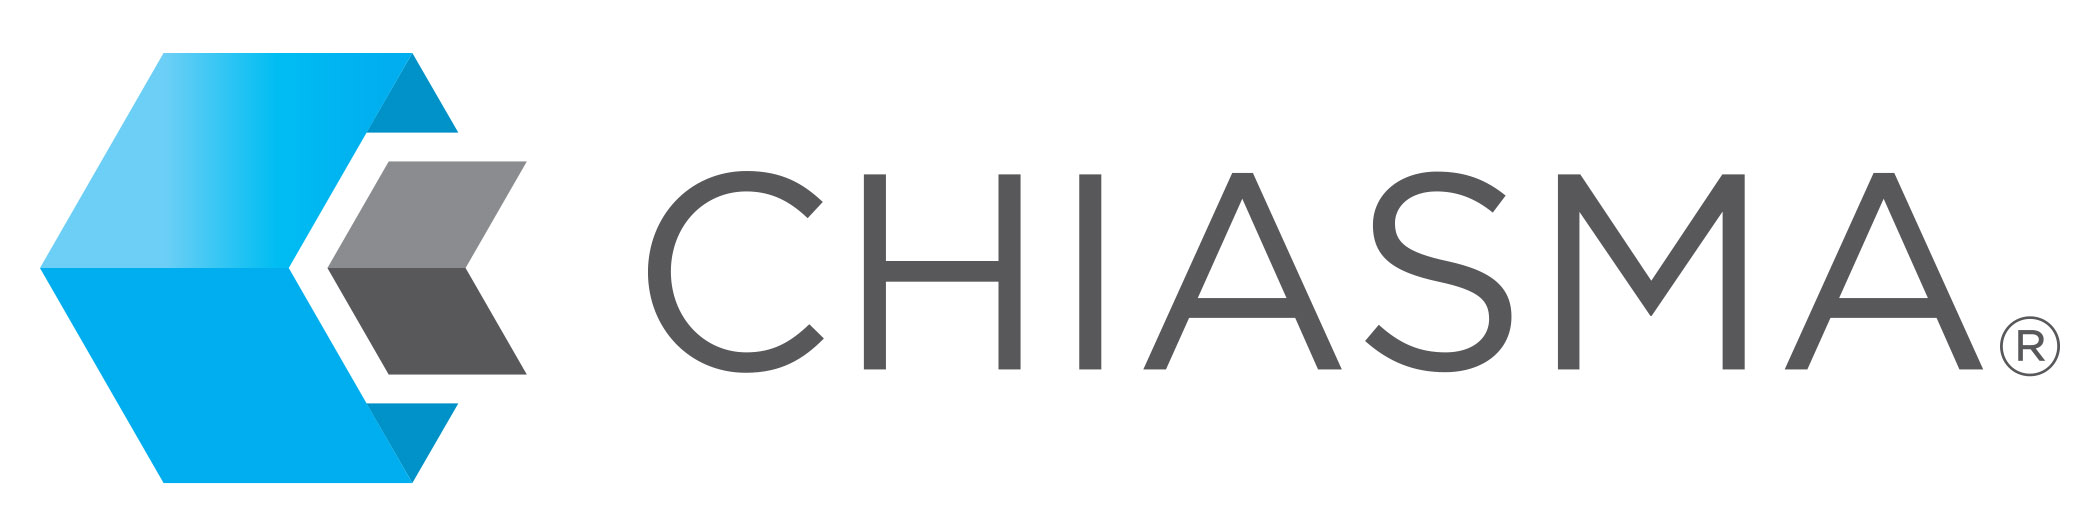 Chiasma Logo RGB Final